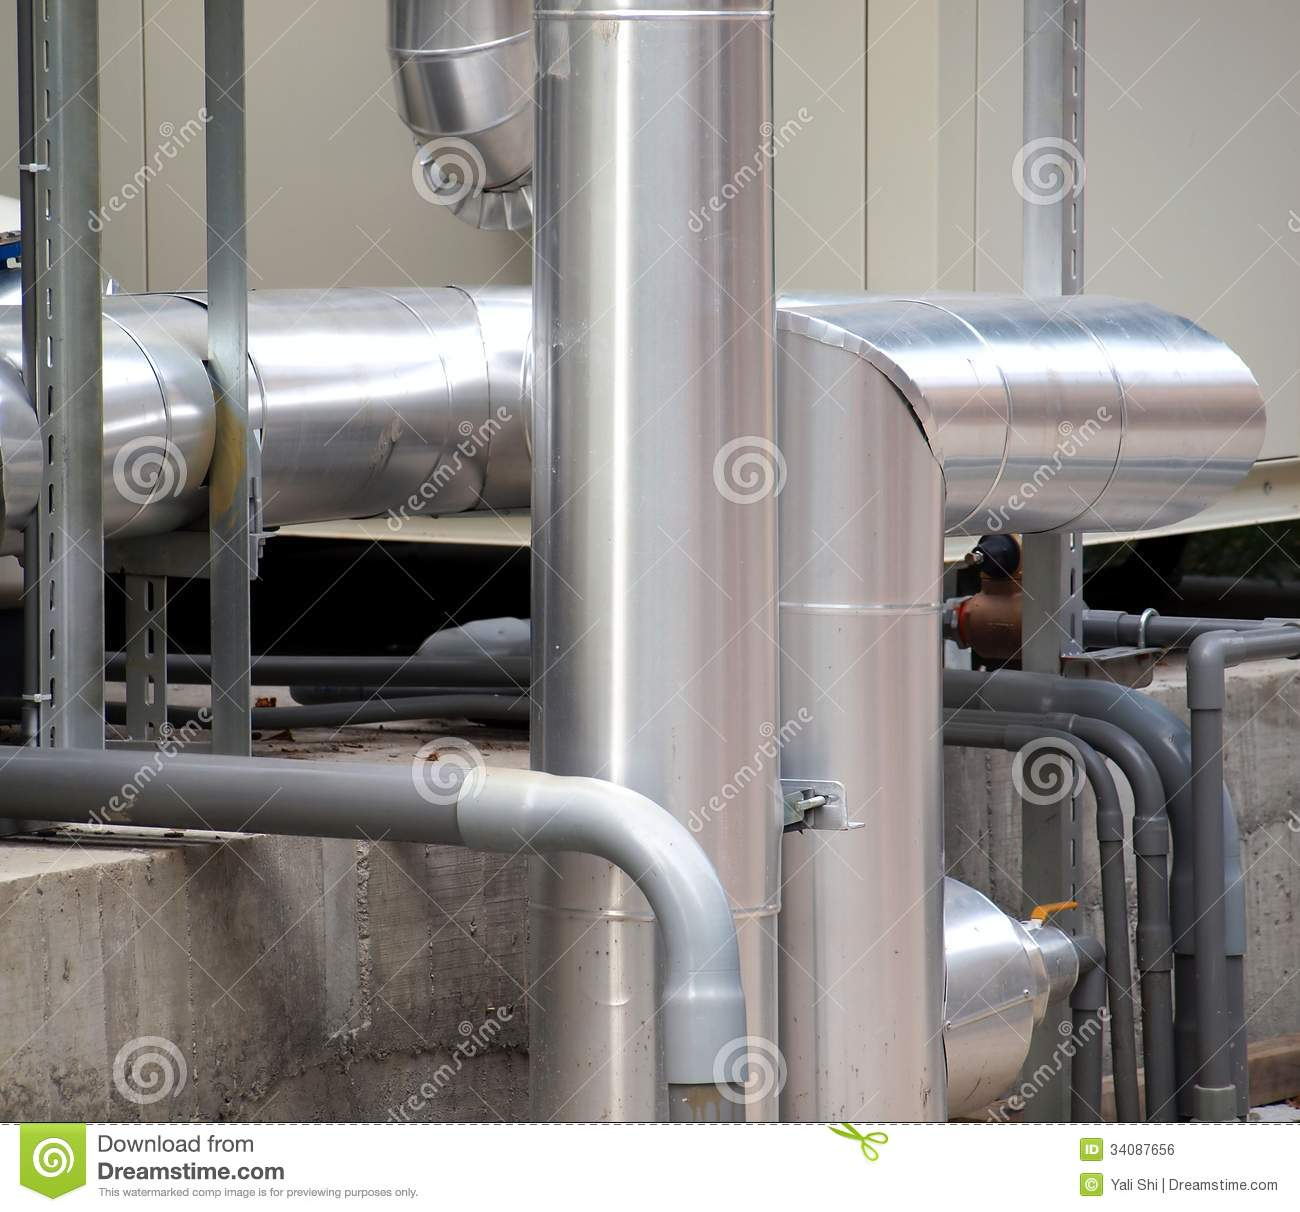 Industrial Air Pipes : Airconditioning cooling pipes royalty free stock image